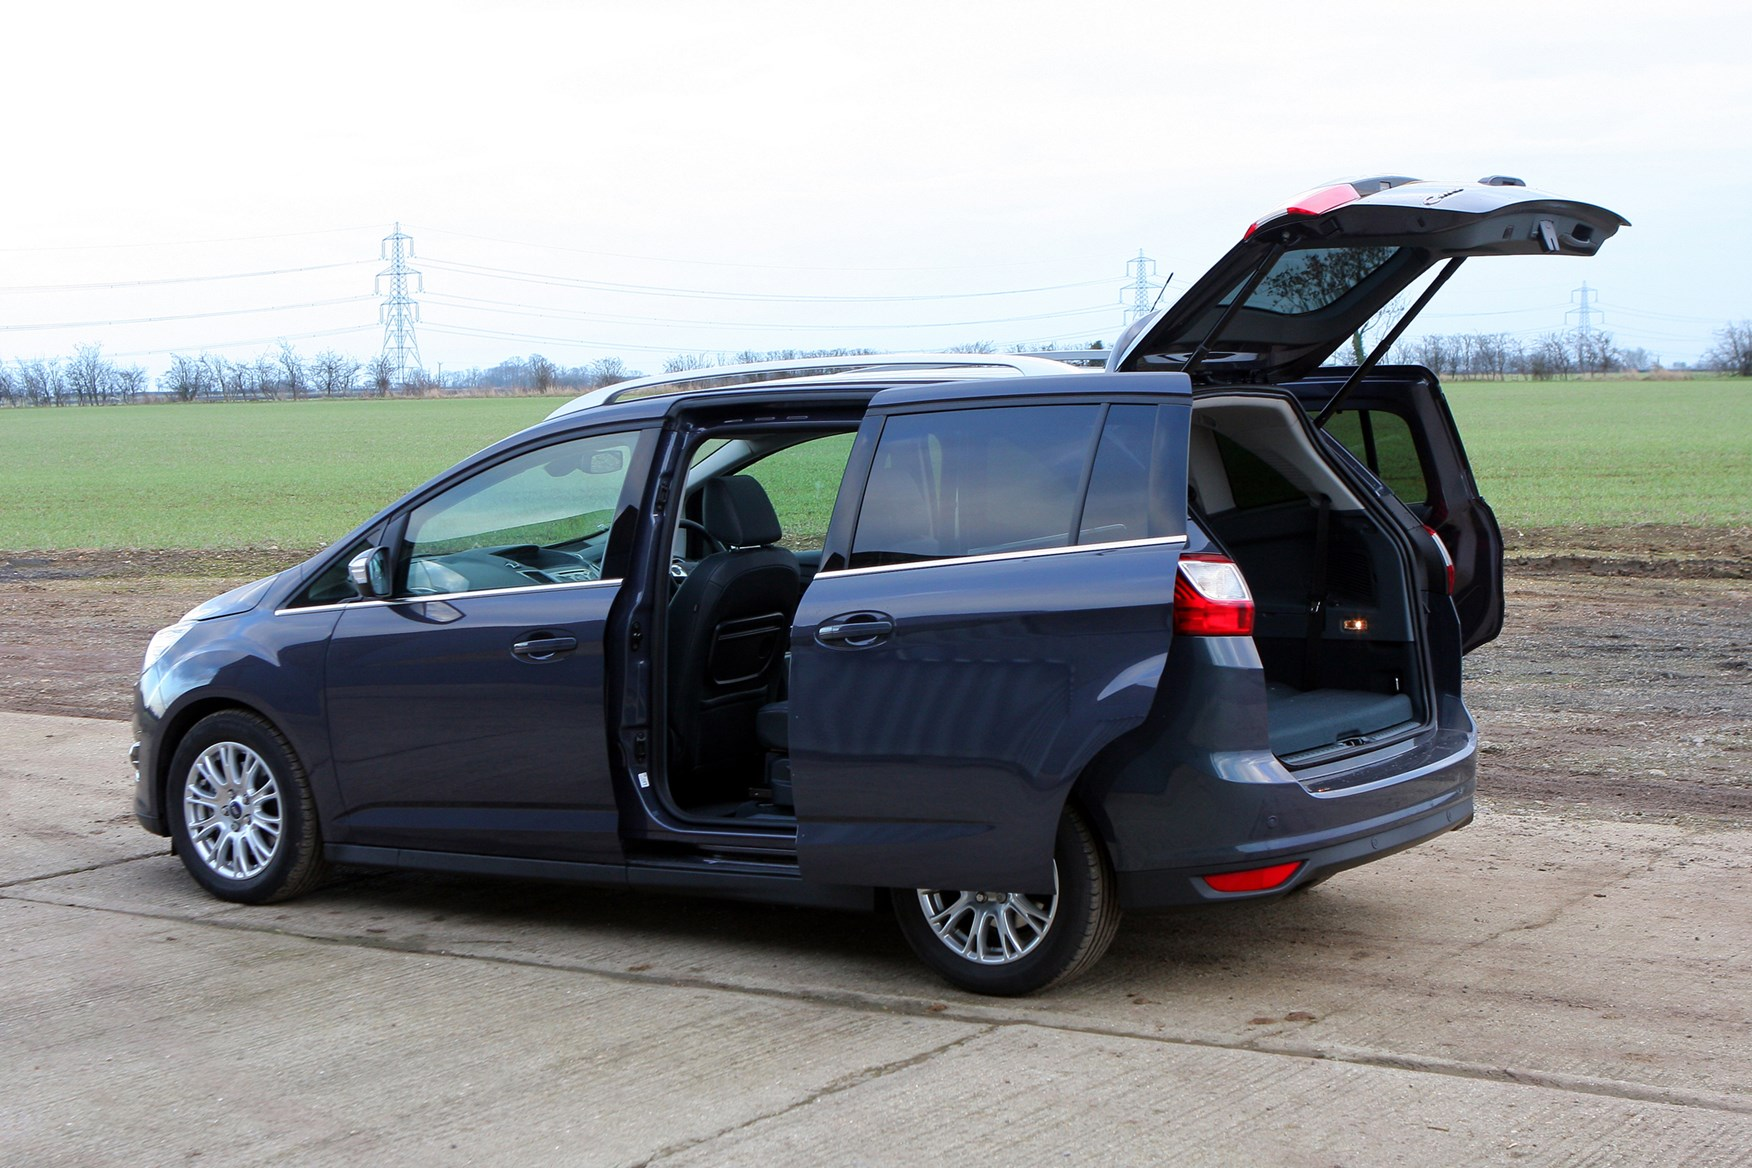 ford grand c max estate review 2010 parkers. Black Bedroom Furniture Sets. Home Design Ideas